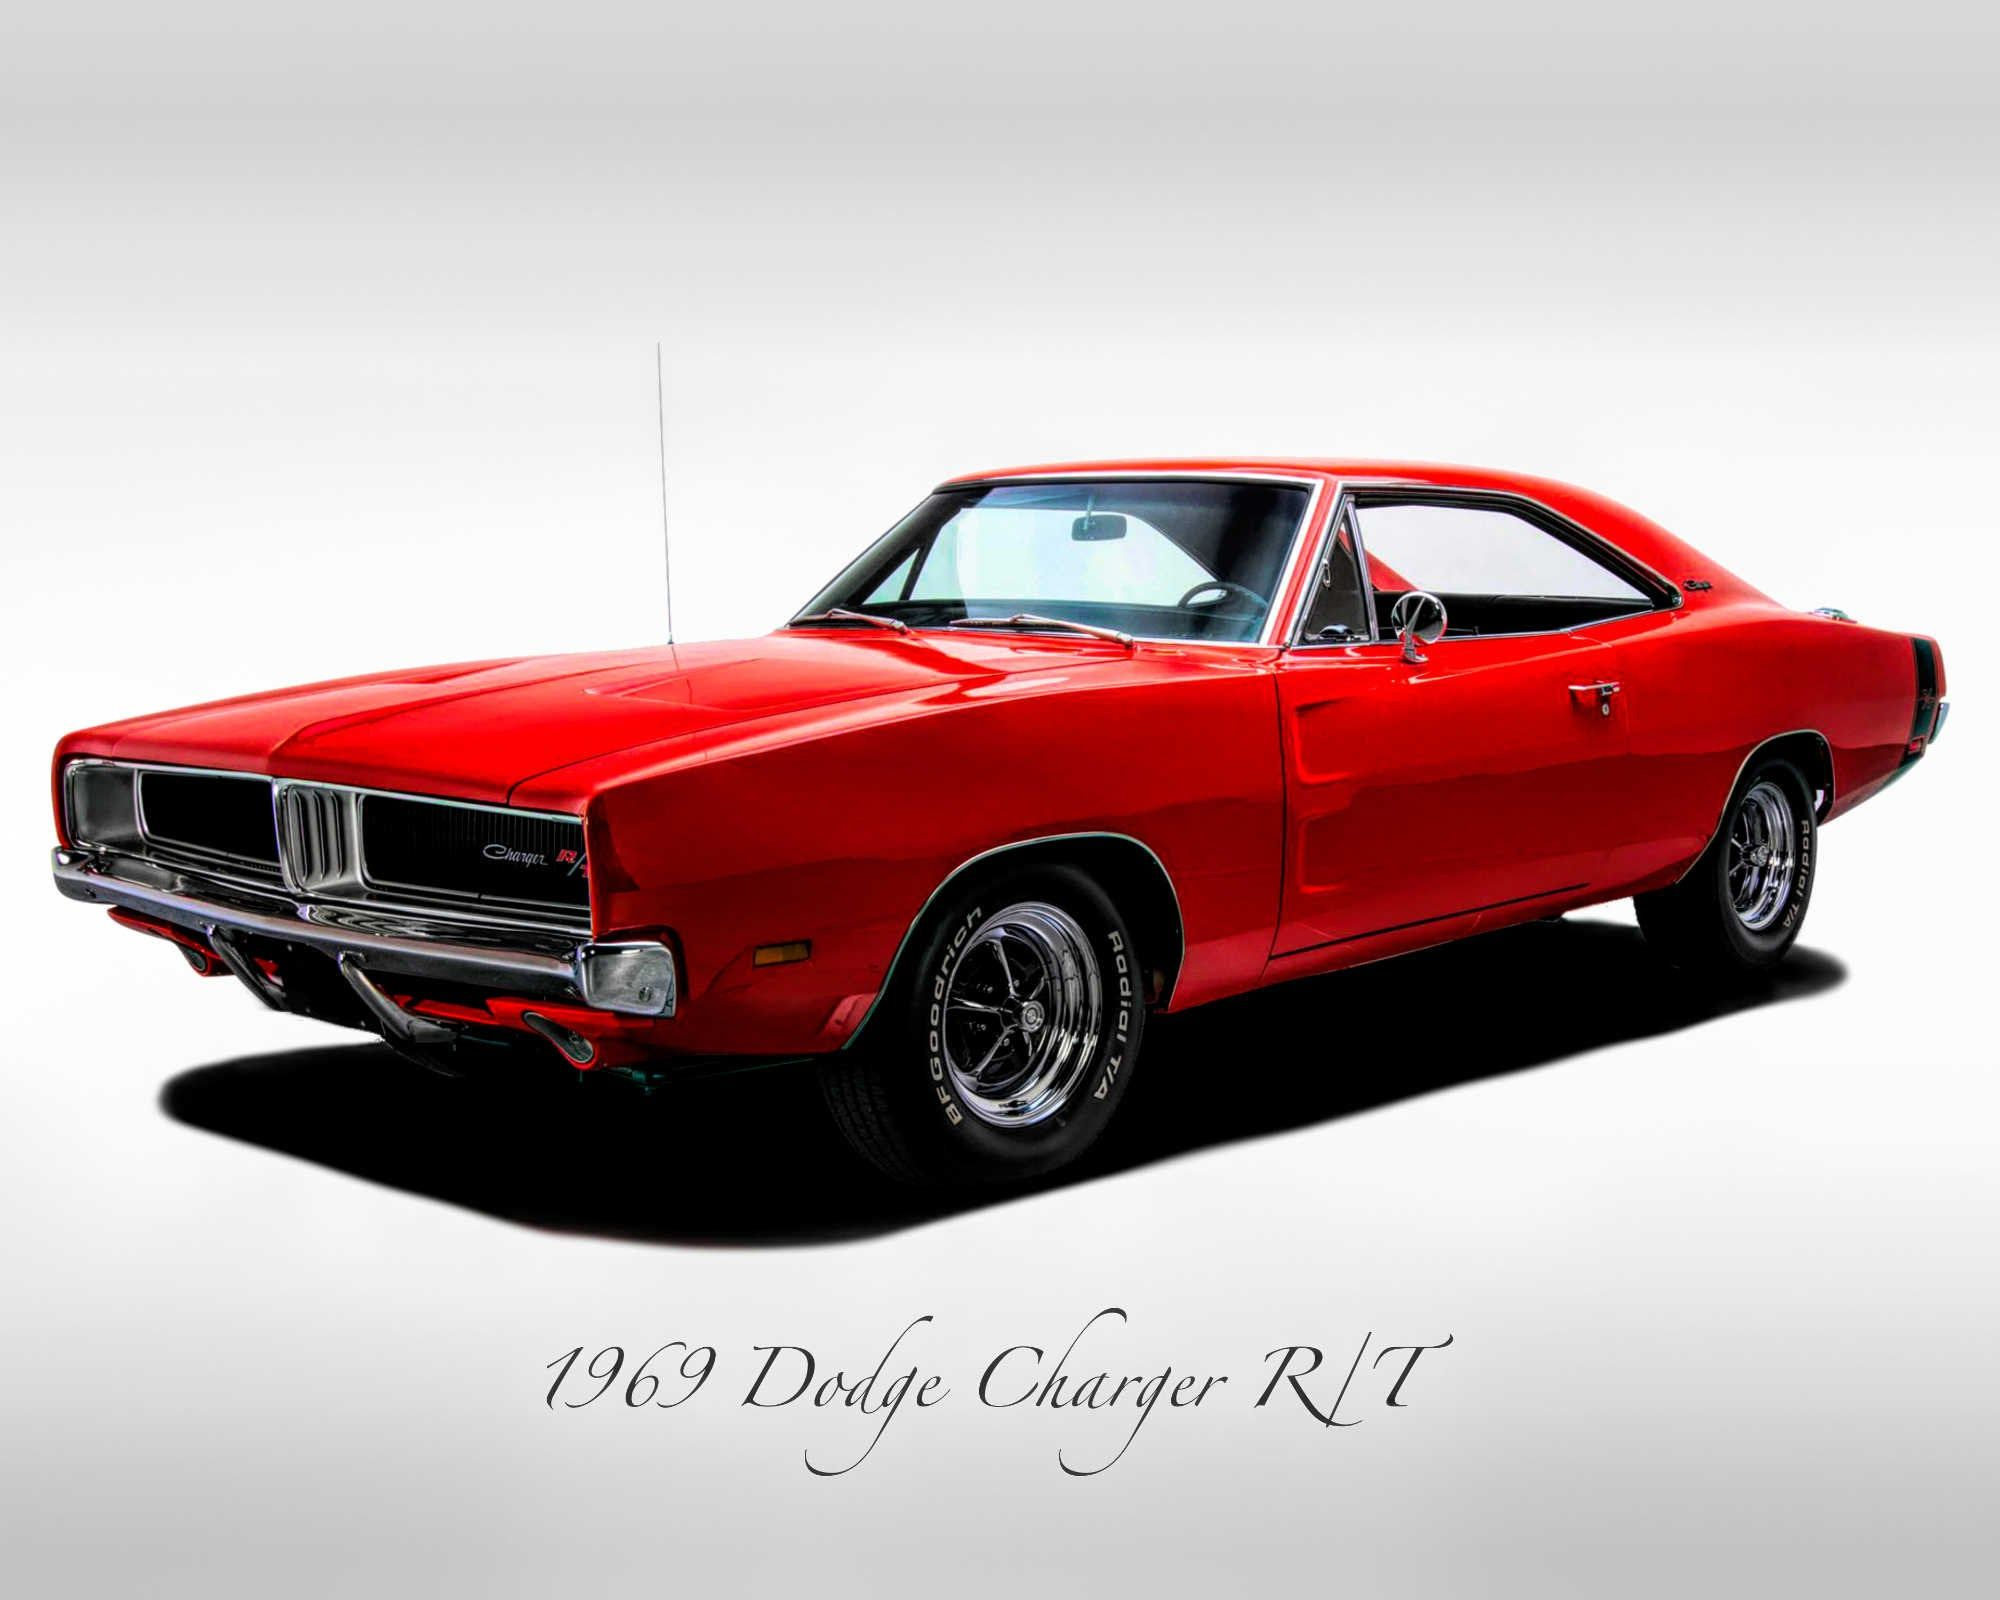 Classic Cars – 1969 Dodge Charger R/T – Muscle Car – Print